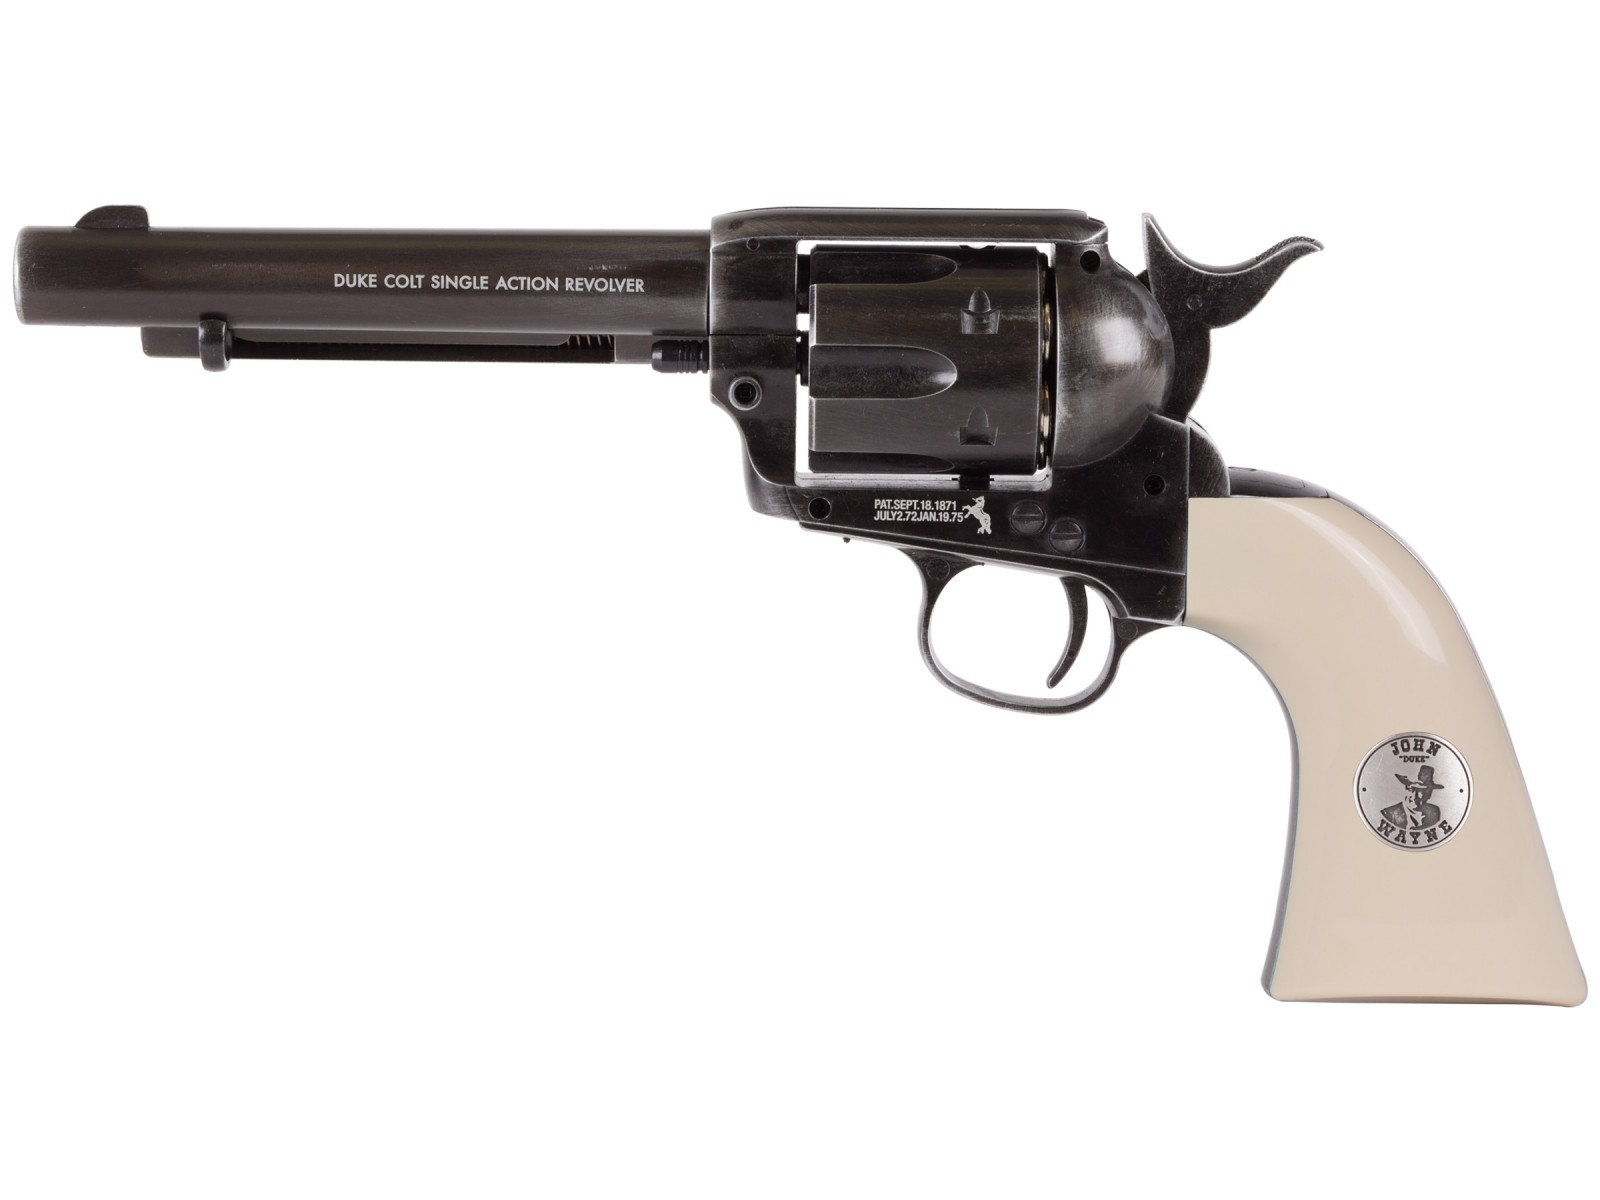 Cheap Duke Shootist CO2 Weathered Pellet Revolver, Limited Edition 0.177